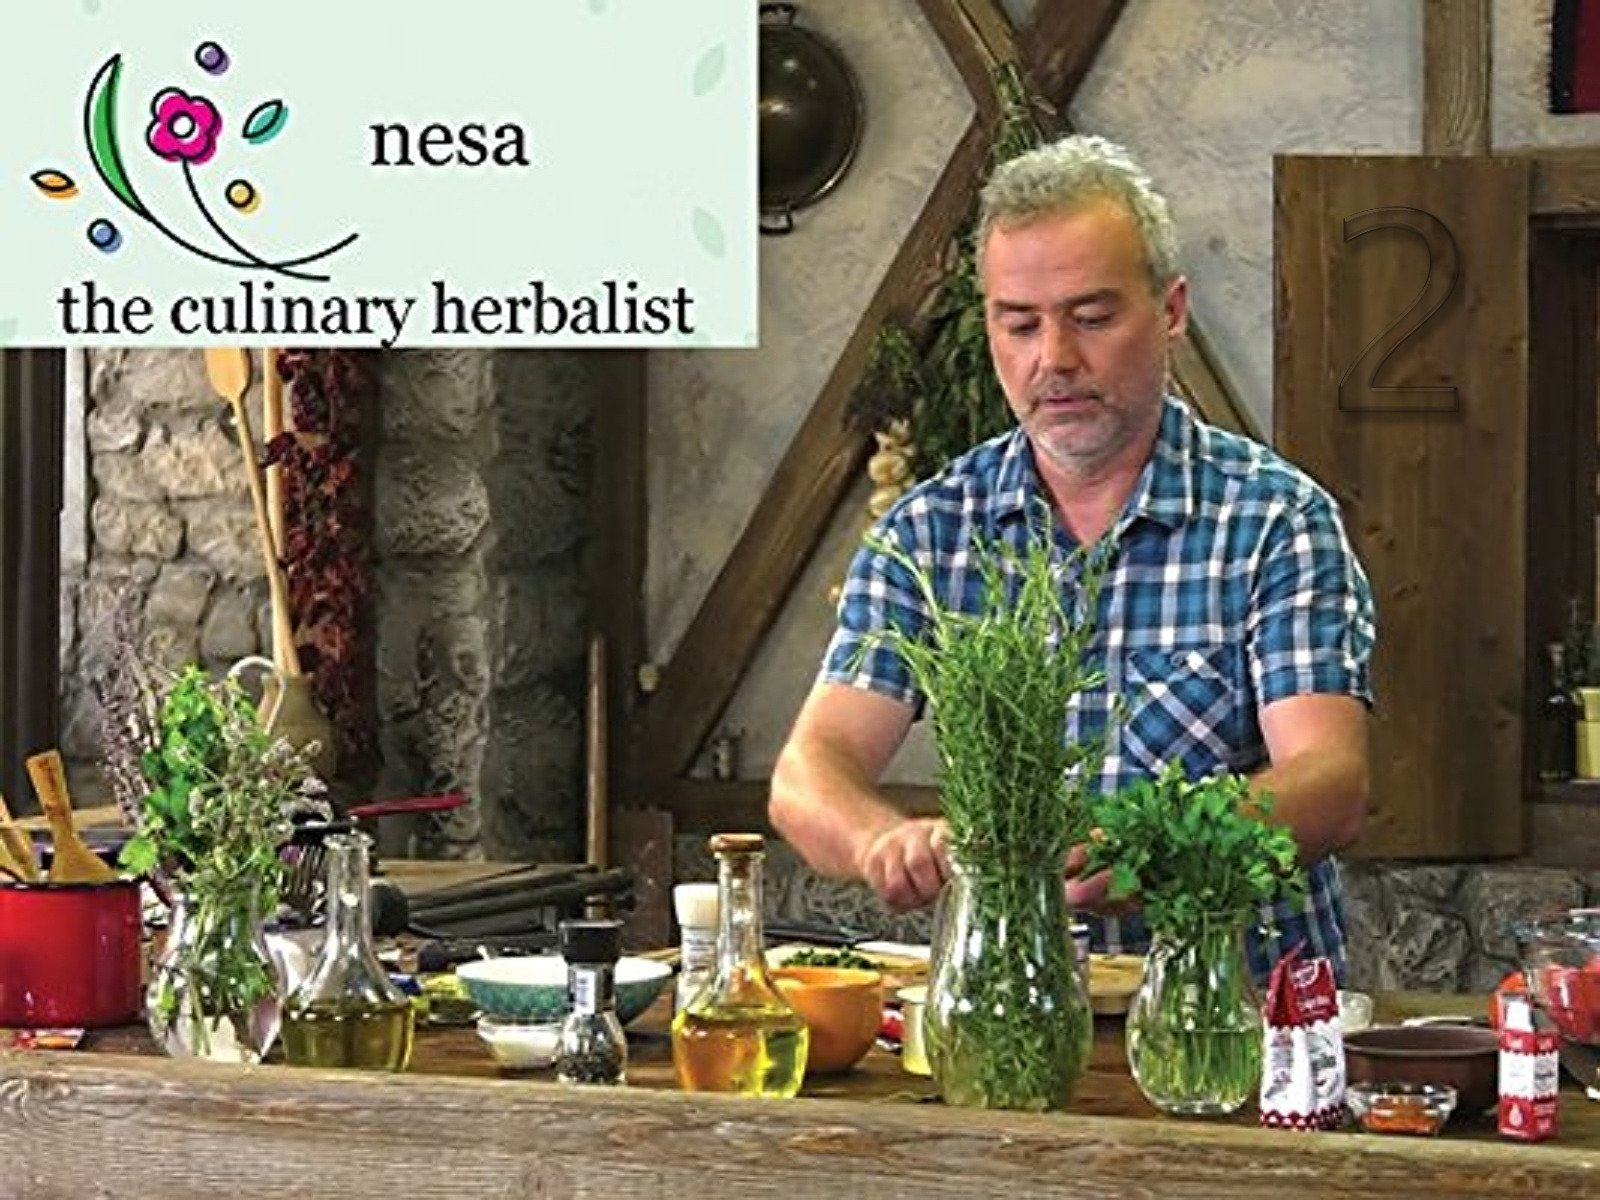 Nesa The Culinary Herbalist - Season 2